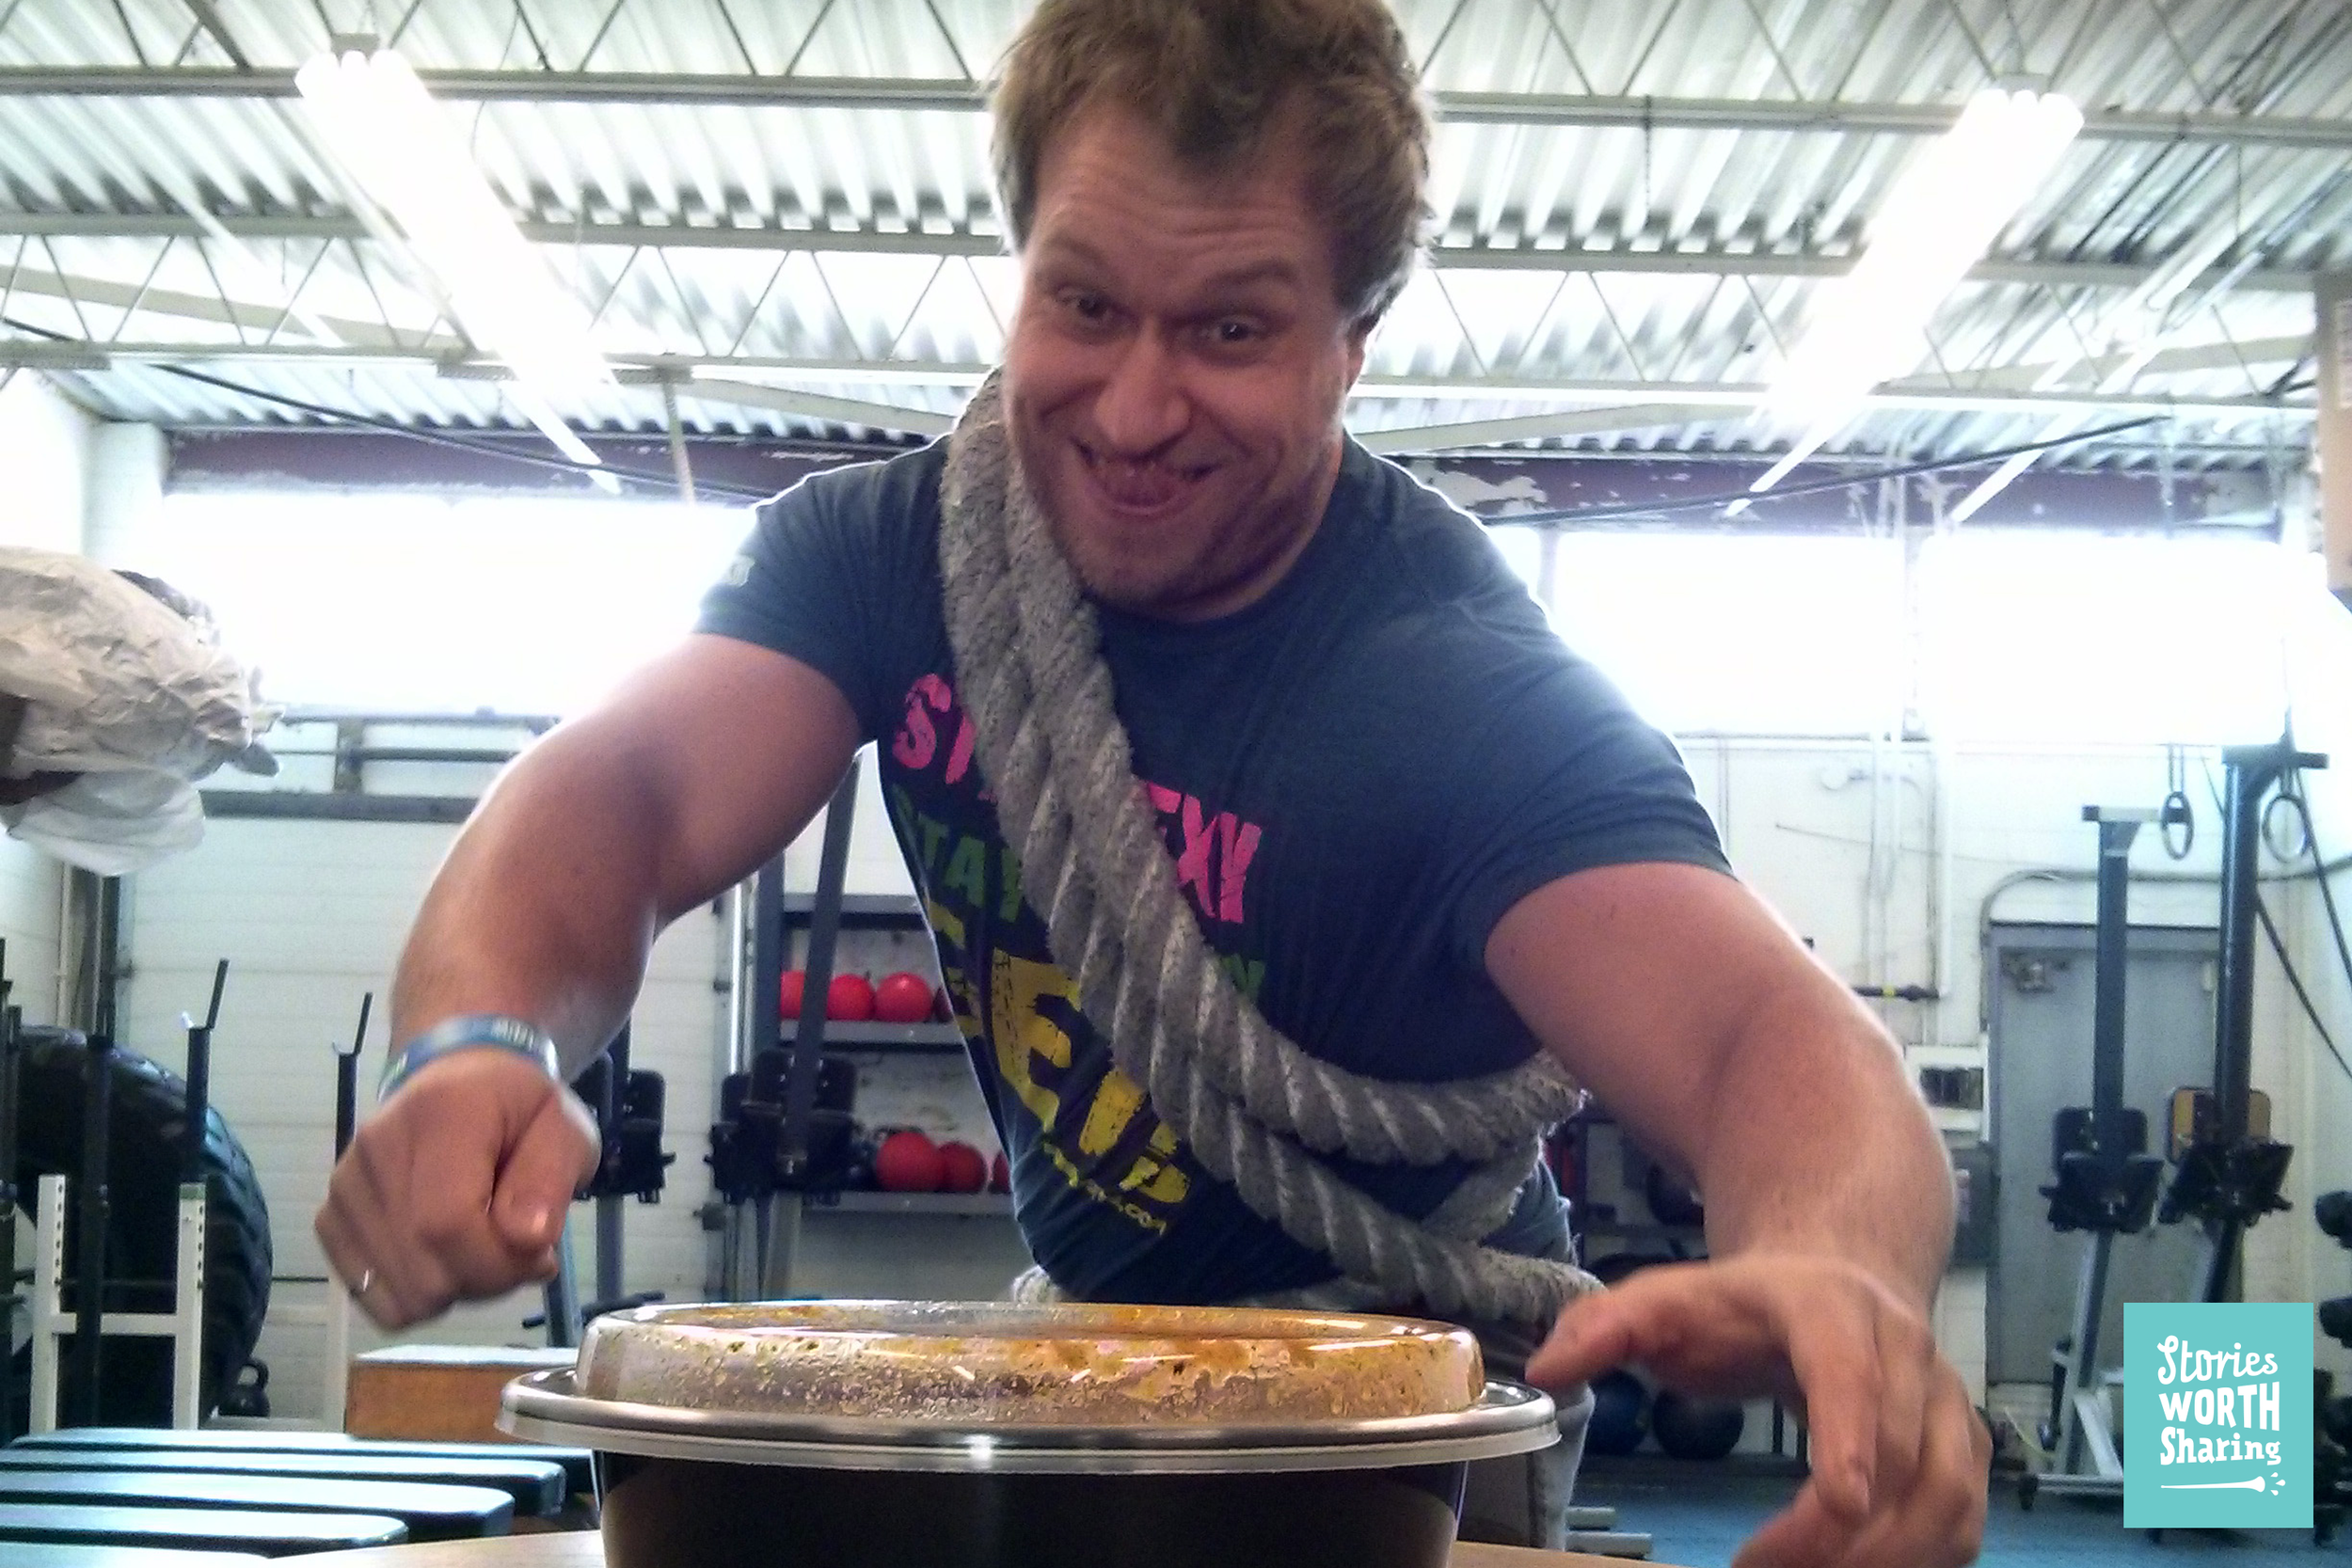 Furious Pete tied down with rope, as he tries to dip naan into some curry